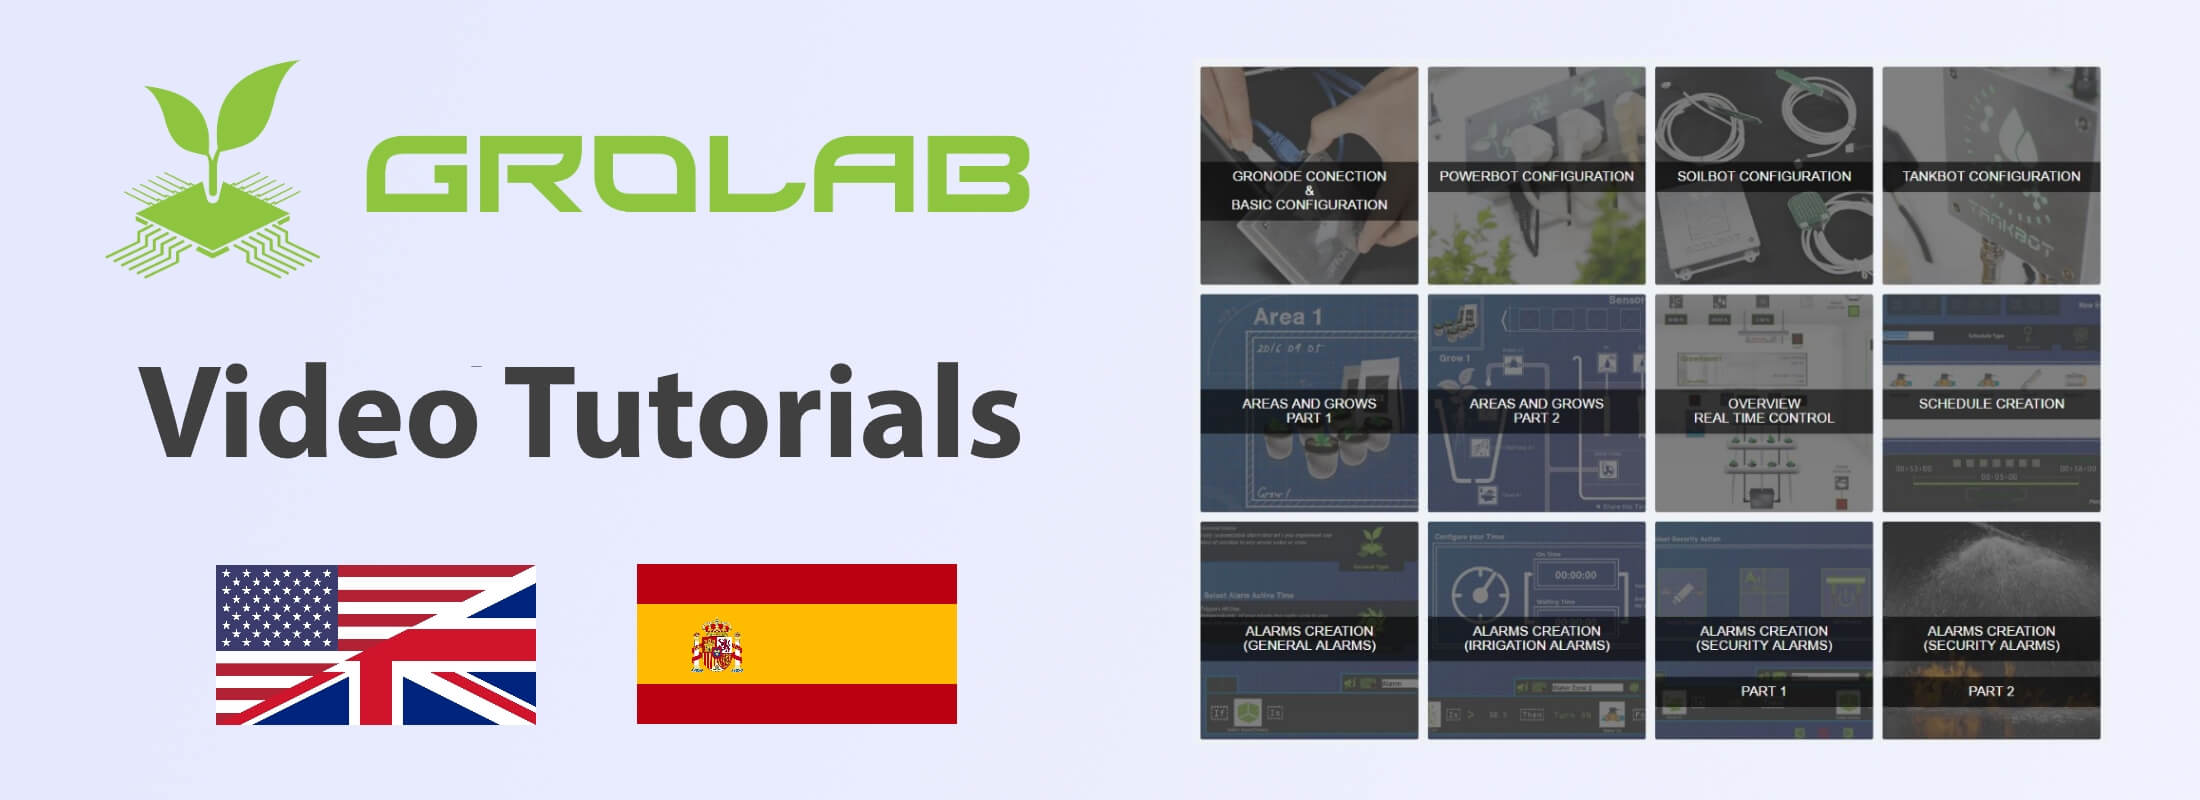 """GroLab™ video tutorials available banner - GroLab™ logo on the left, under the logo the text """"Video Tutorials"""" and 2 flags representing Spanish and English languages, on the right side there are the video tutorials thumbnails"""